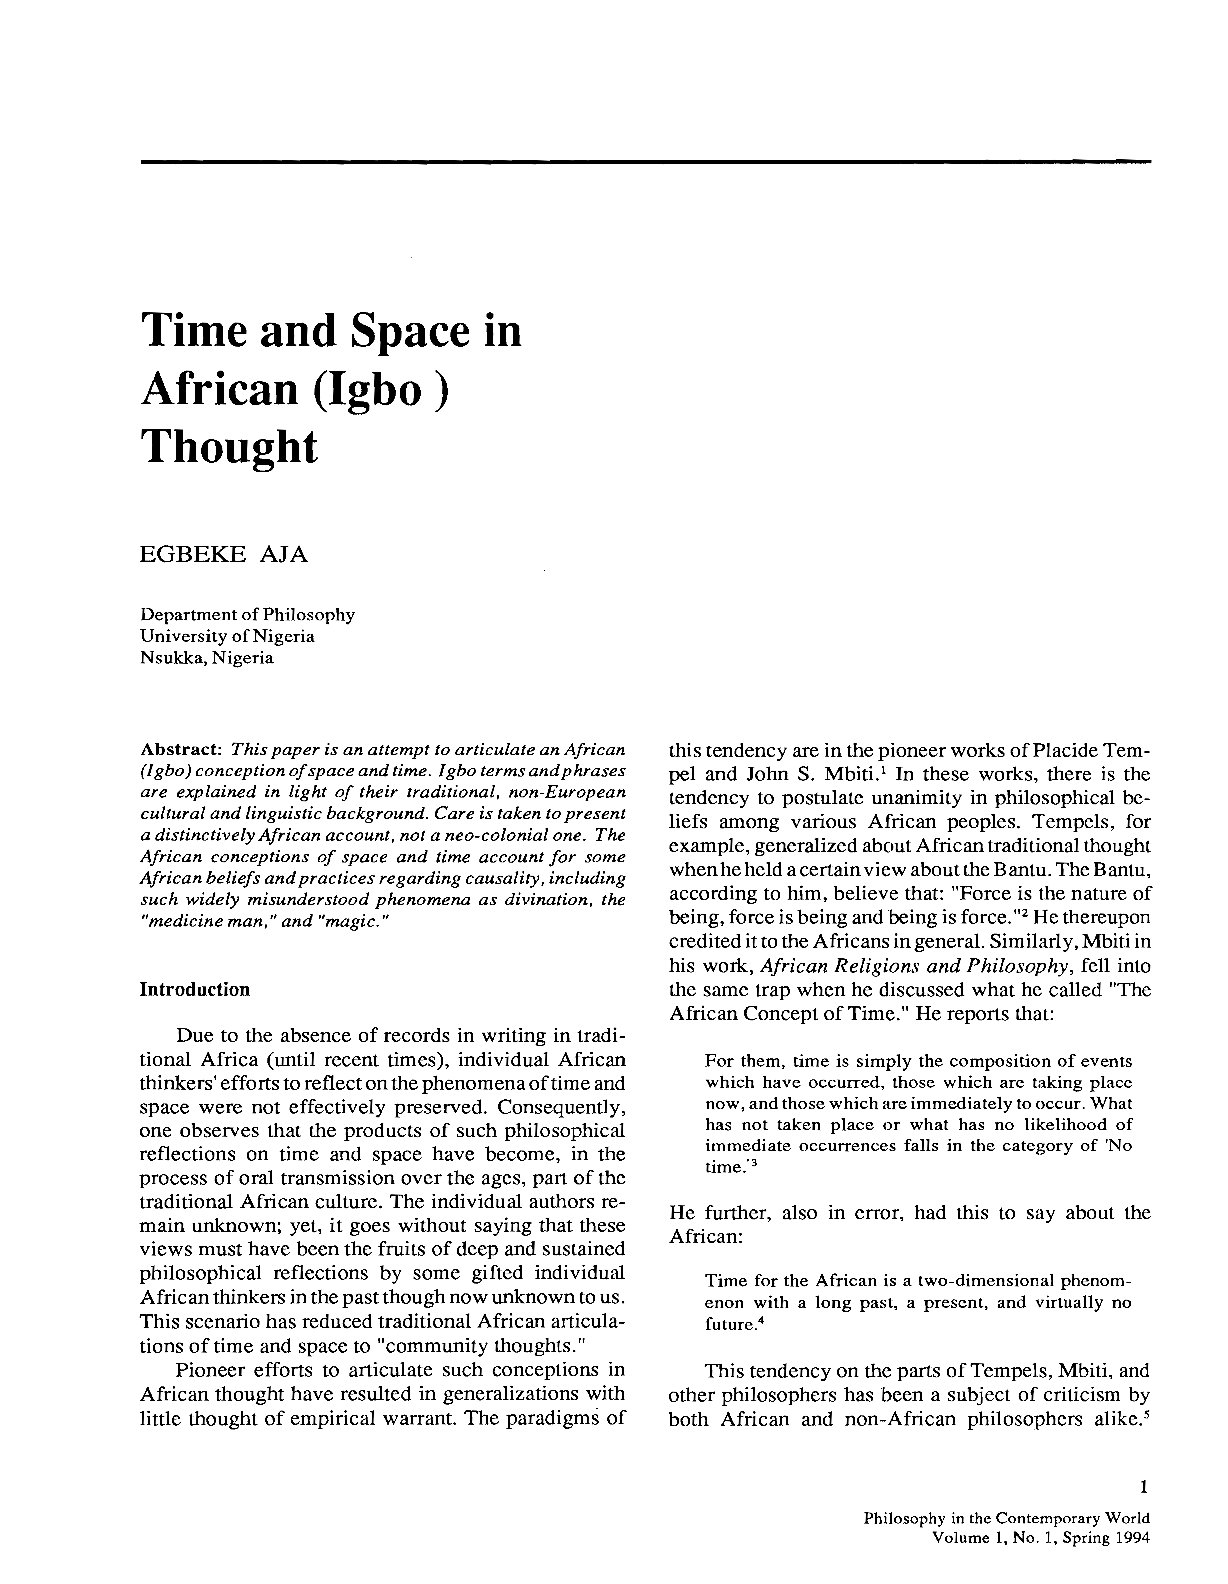 Time and Space in African (Igbo) Thought - Egbeke Aja